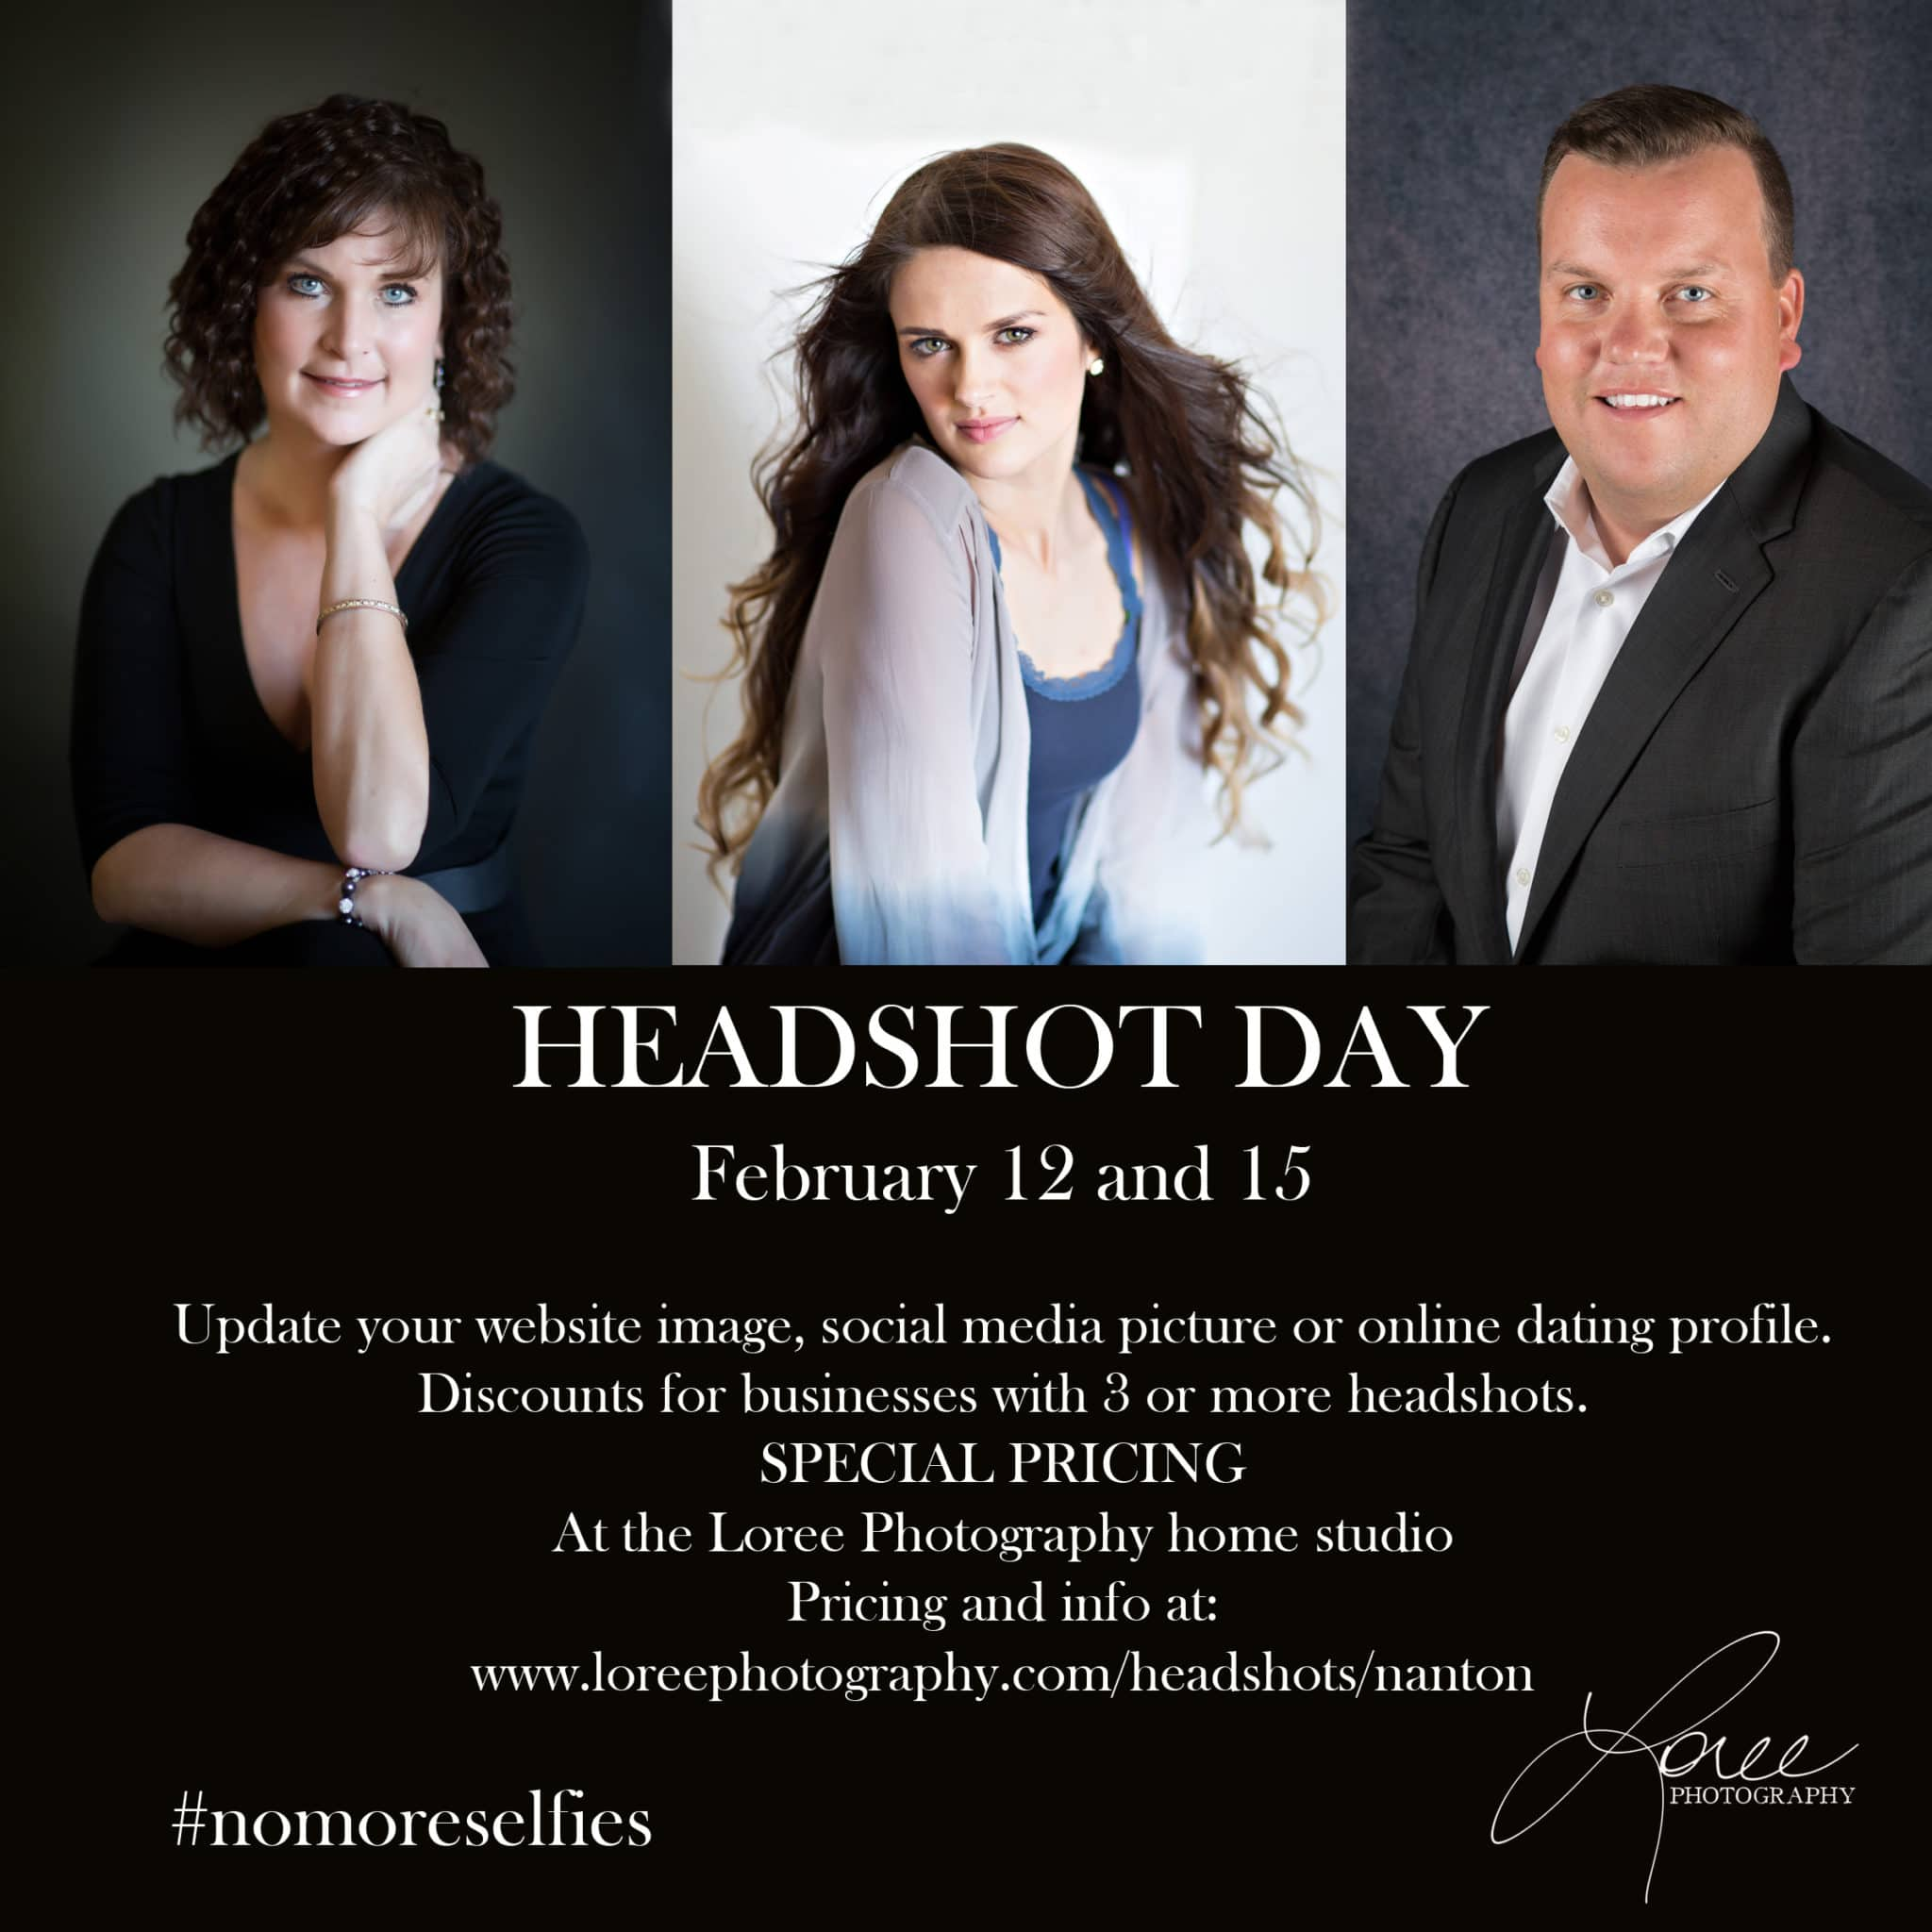 Calgary headshots, Calgary portraits, Calgary headshot photographer, headshot photographers Calgary